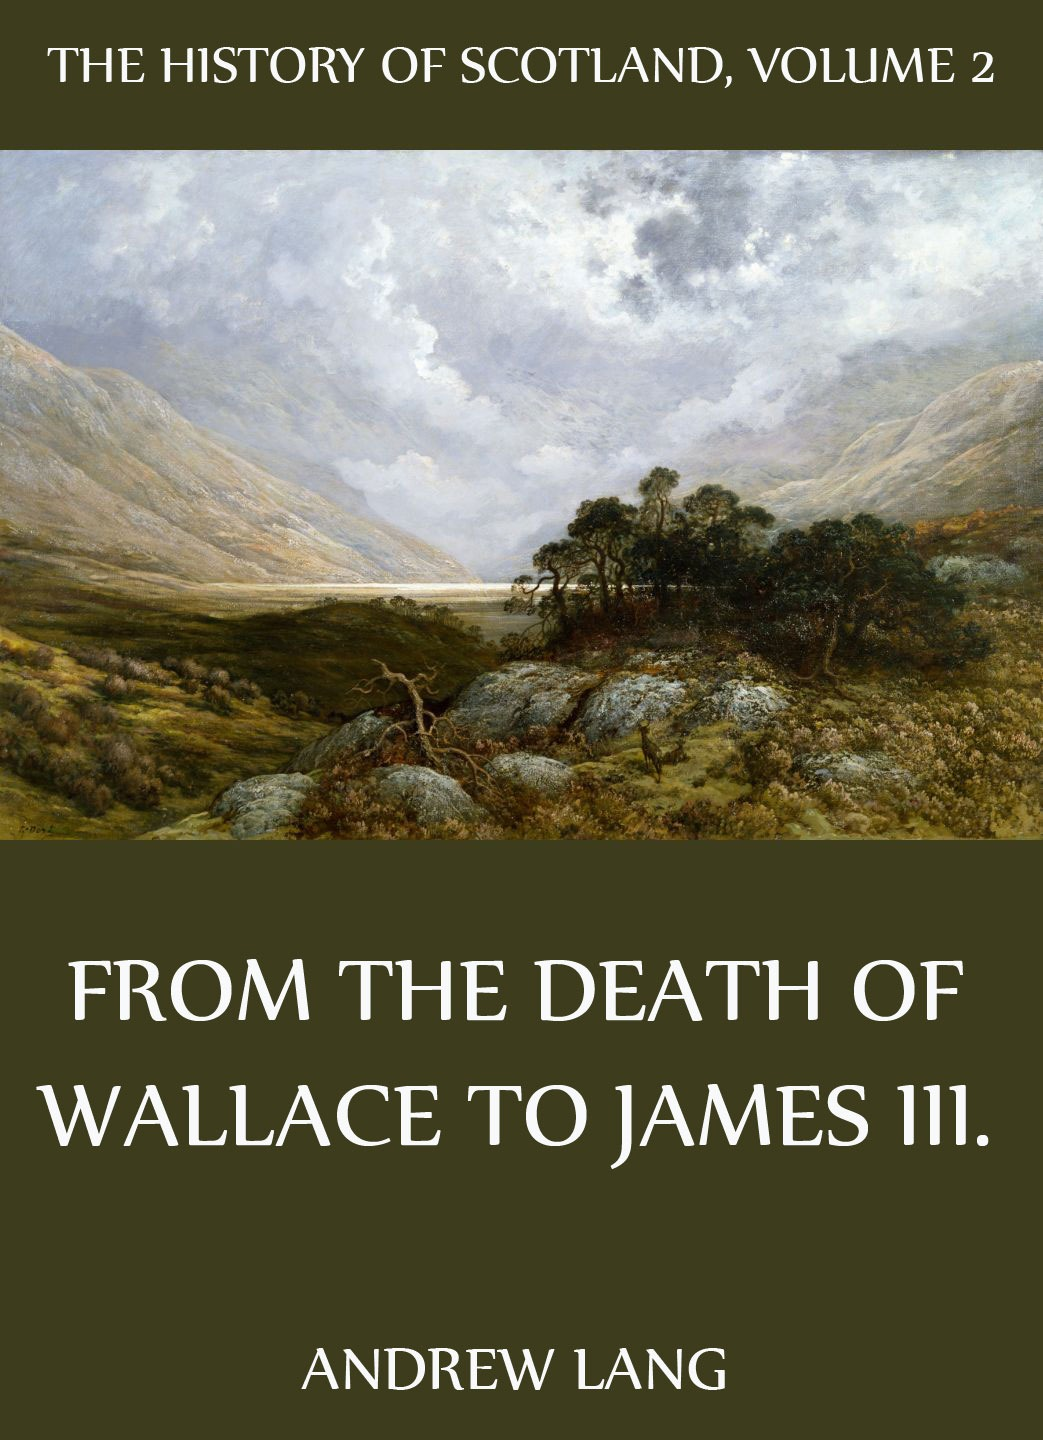 Andrew Lang The History Of Scotland - Volume 2: From The Death Of Wallace To James III. james william the principles of psychology volume 2